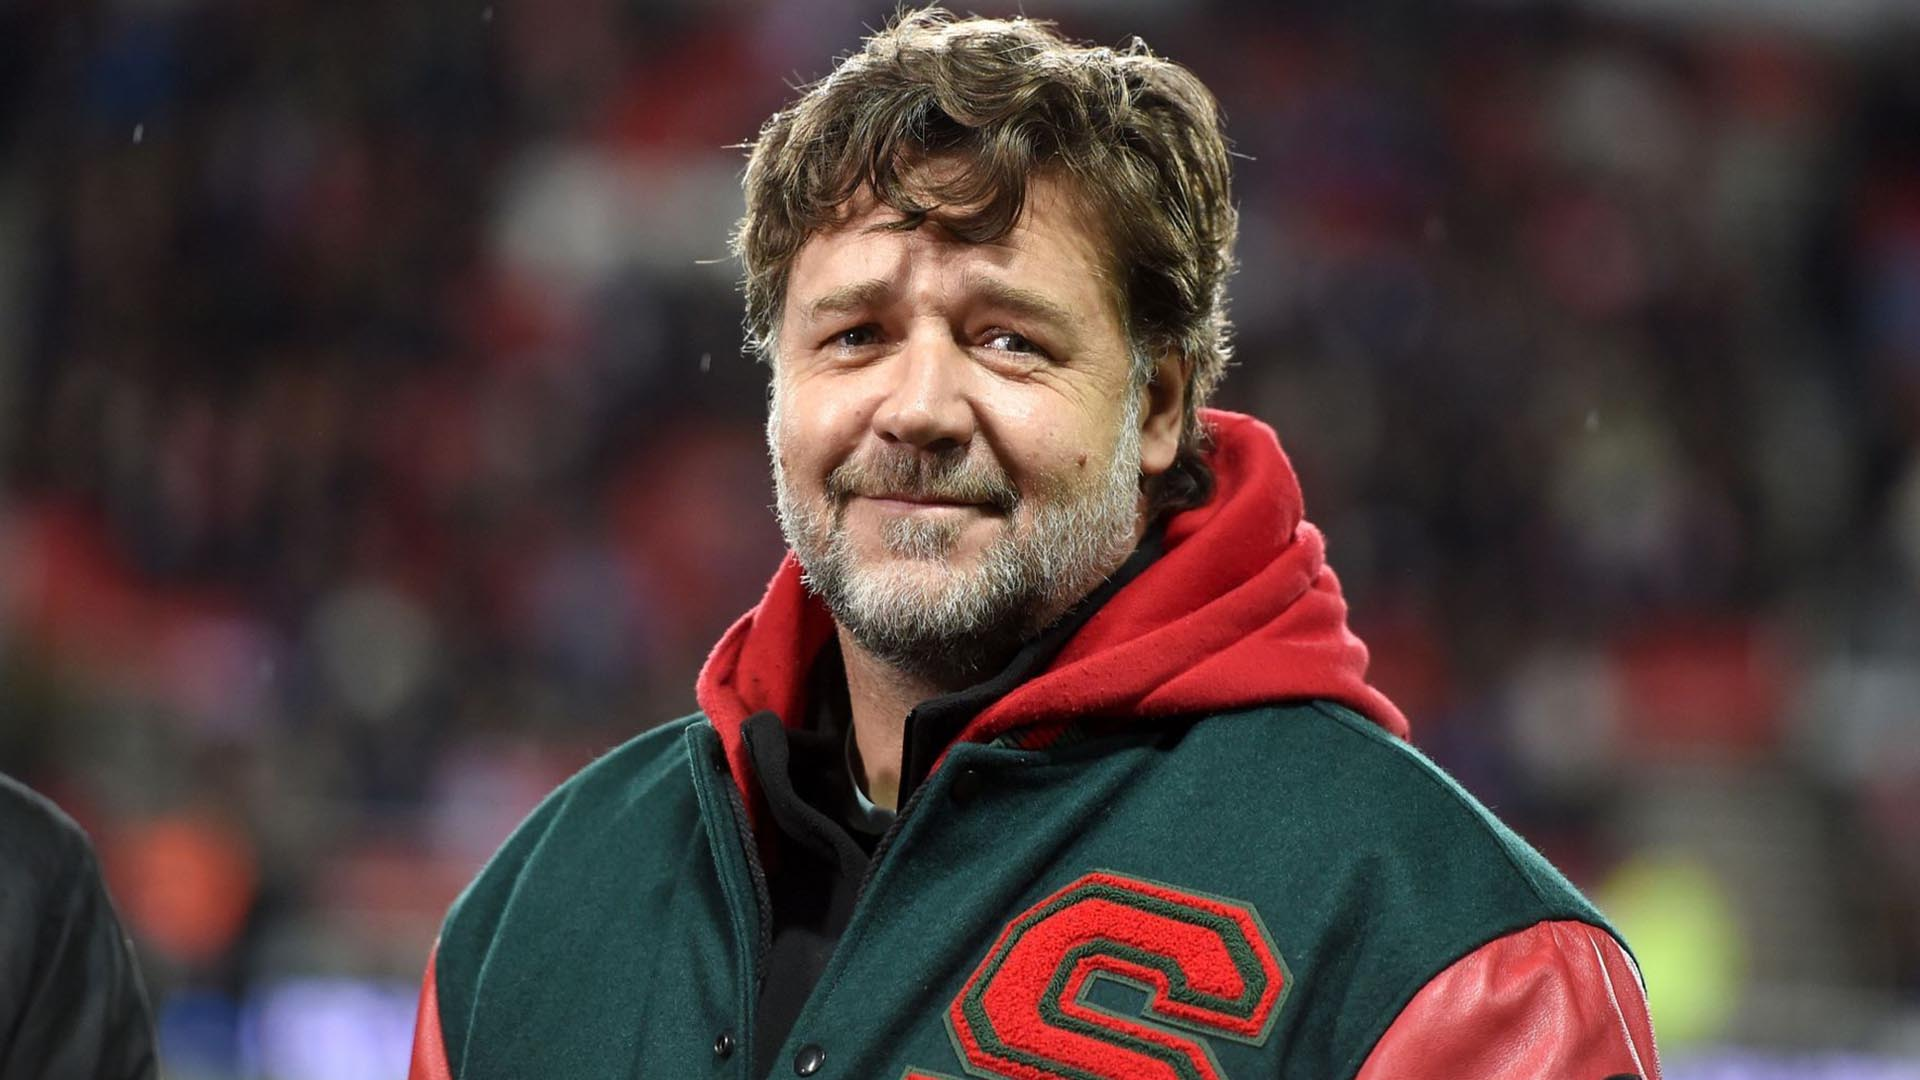 Russell Crowe dono time